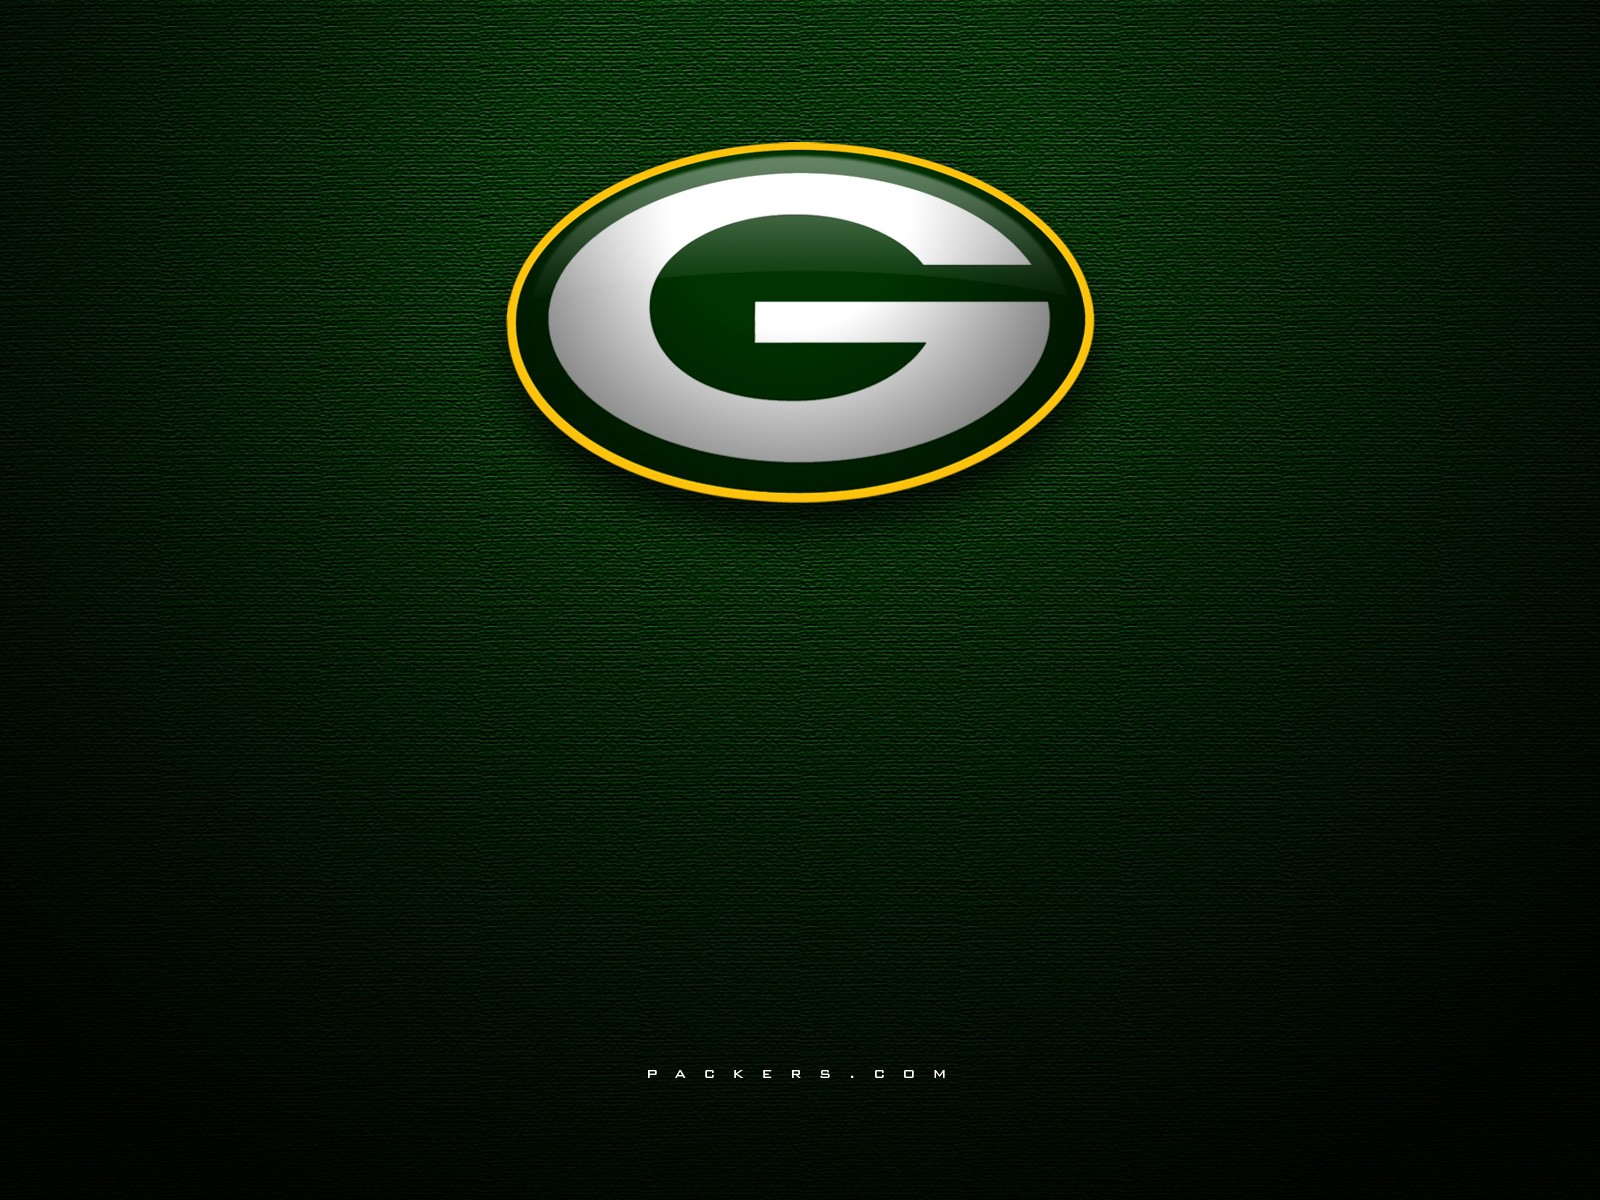 Green Bay Packers Screensaver Posted By Ryan Mercado